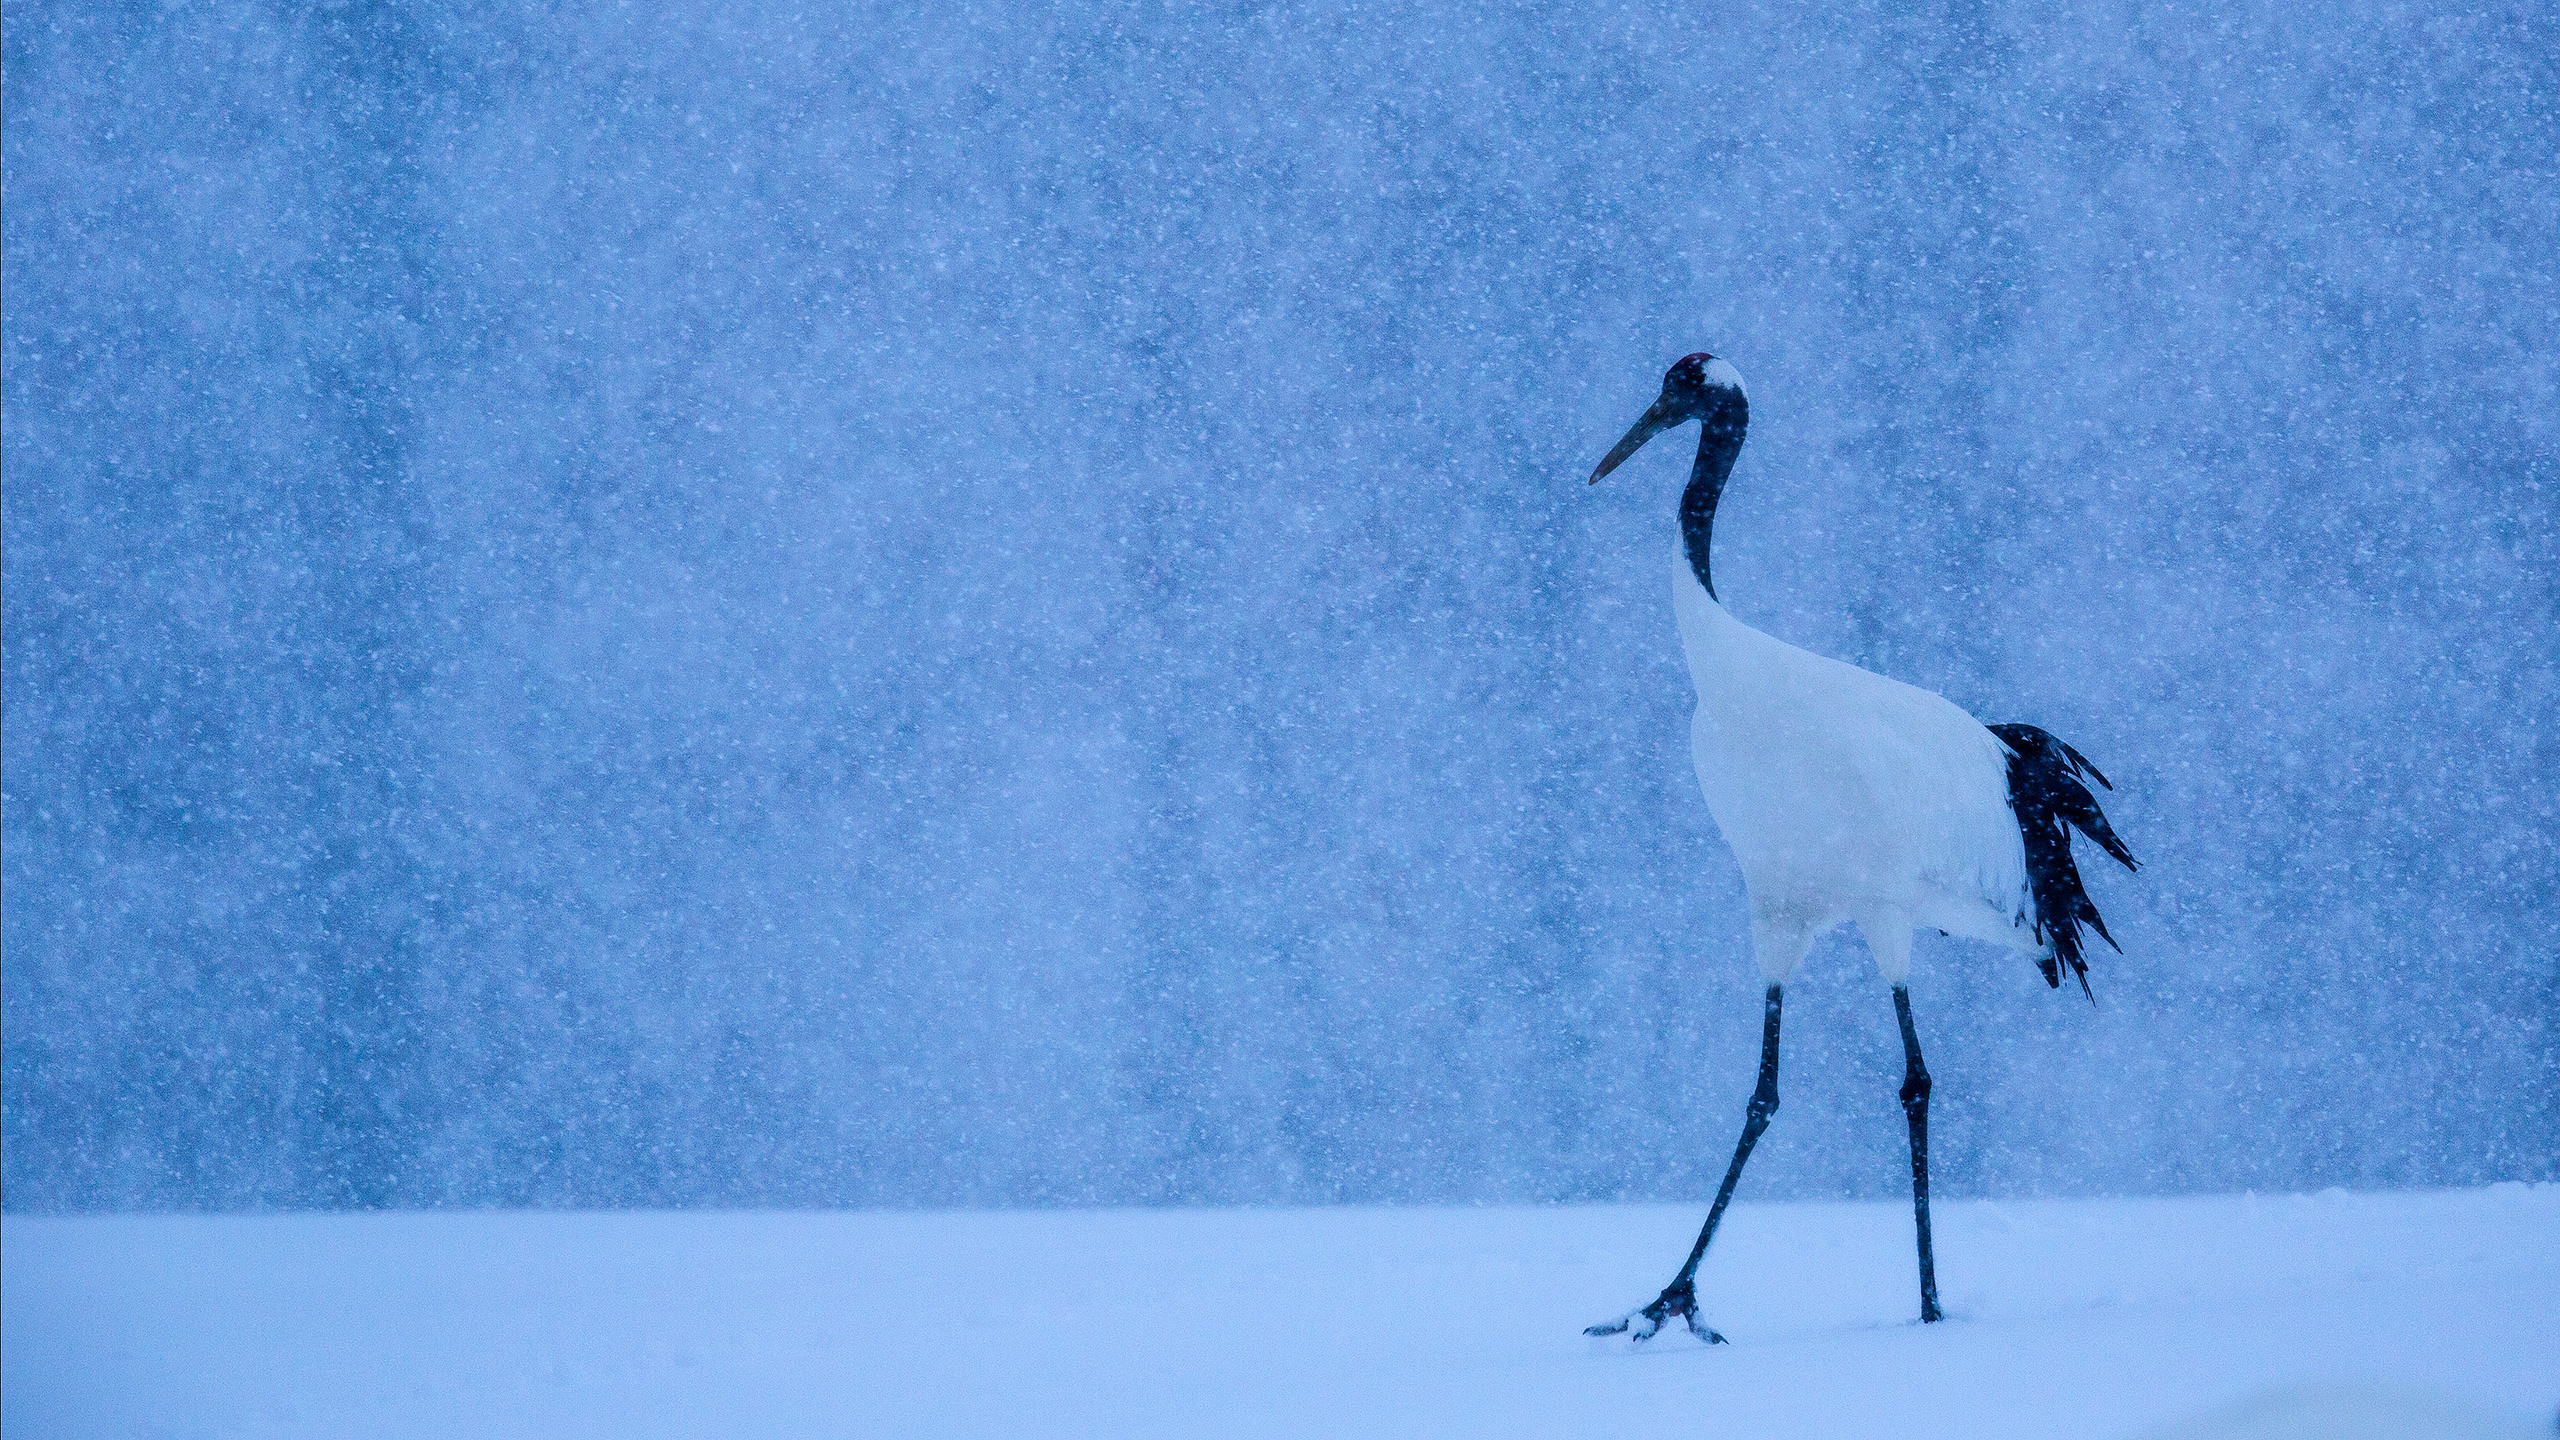 Red Crowned Crane in Japan during Snowfall by Arindam Bhattacharya wildlife photography